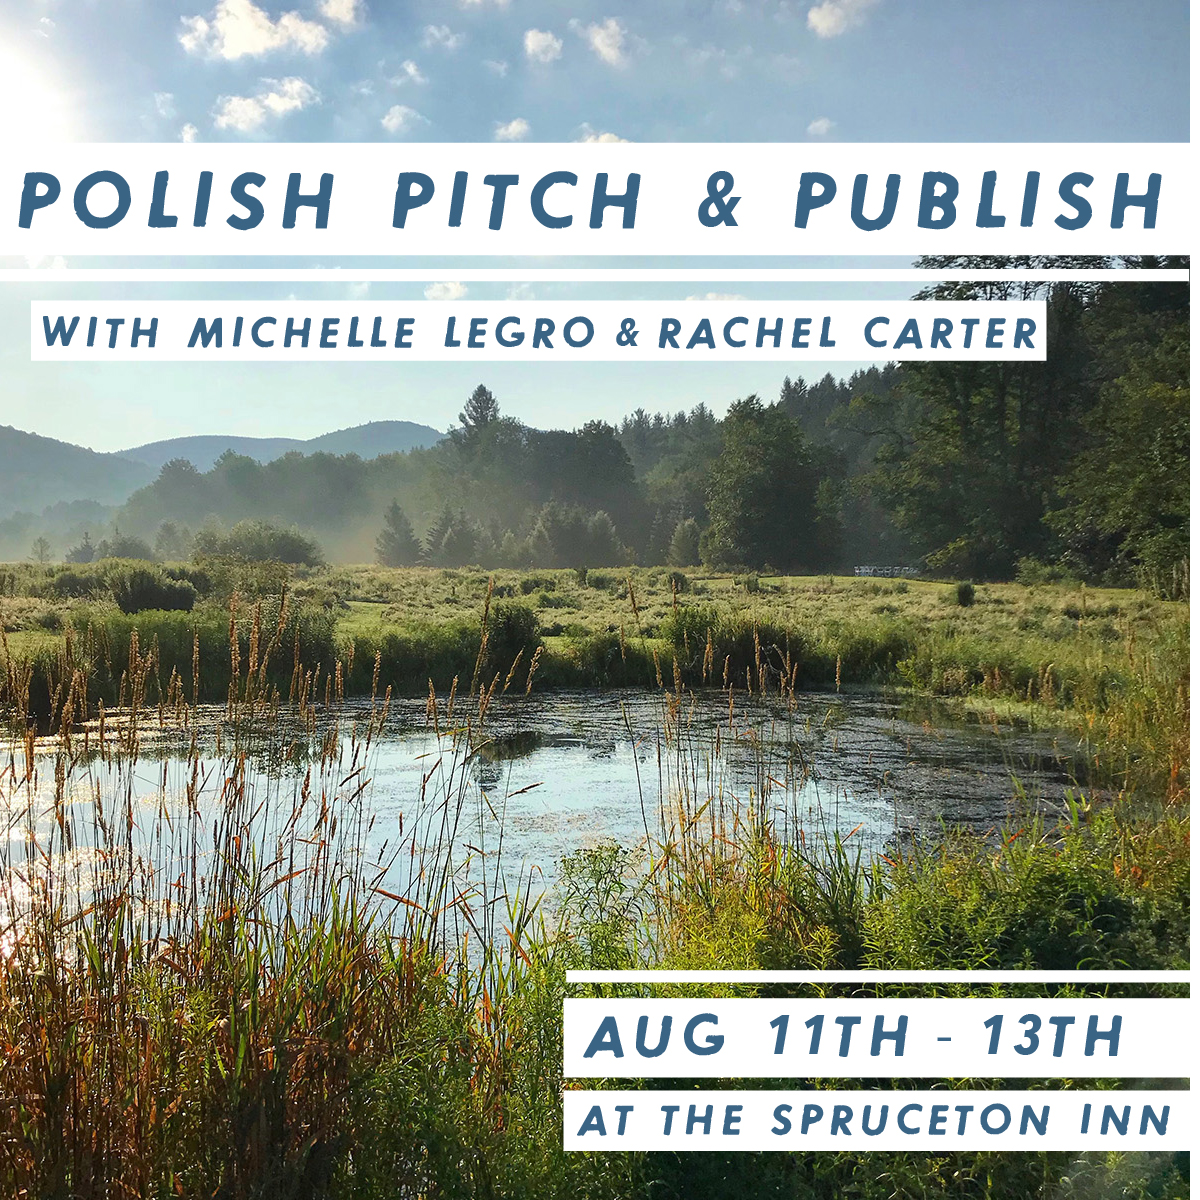 Polish Pitch & Publish at the Spruceton Inn.jpg